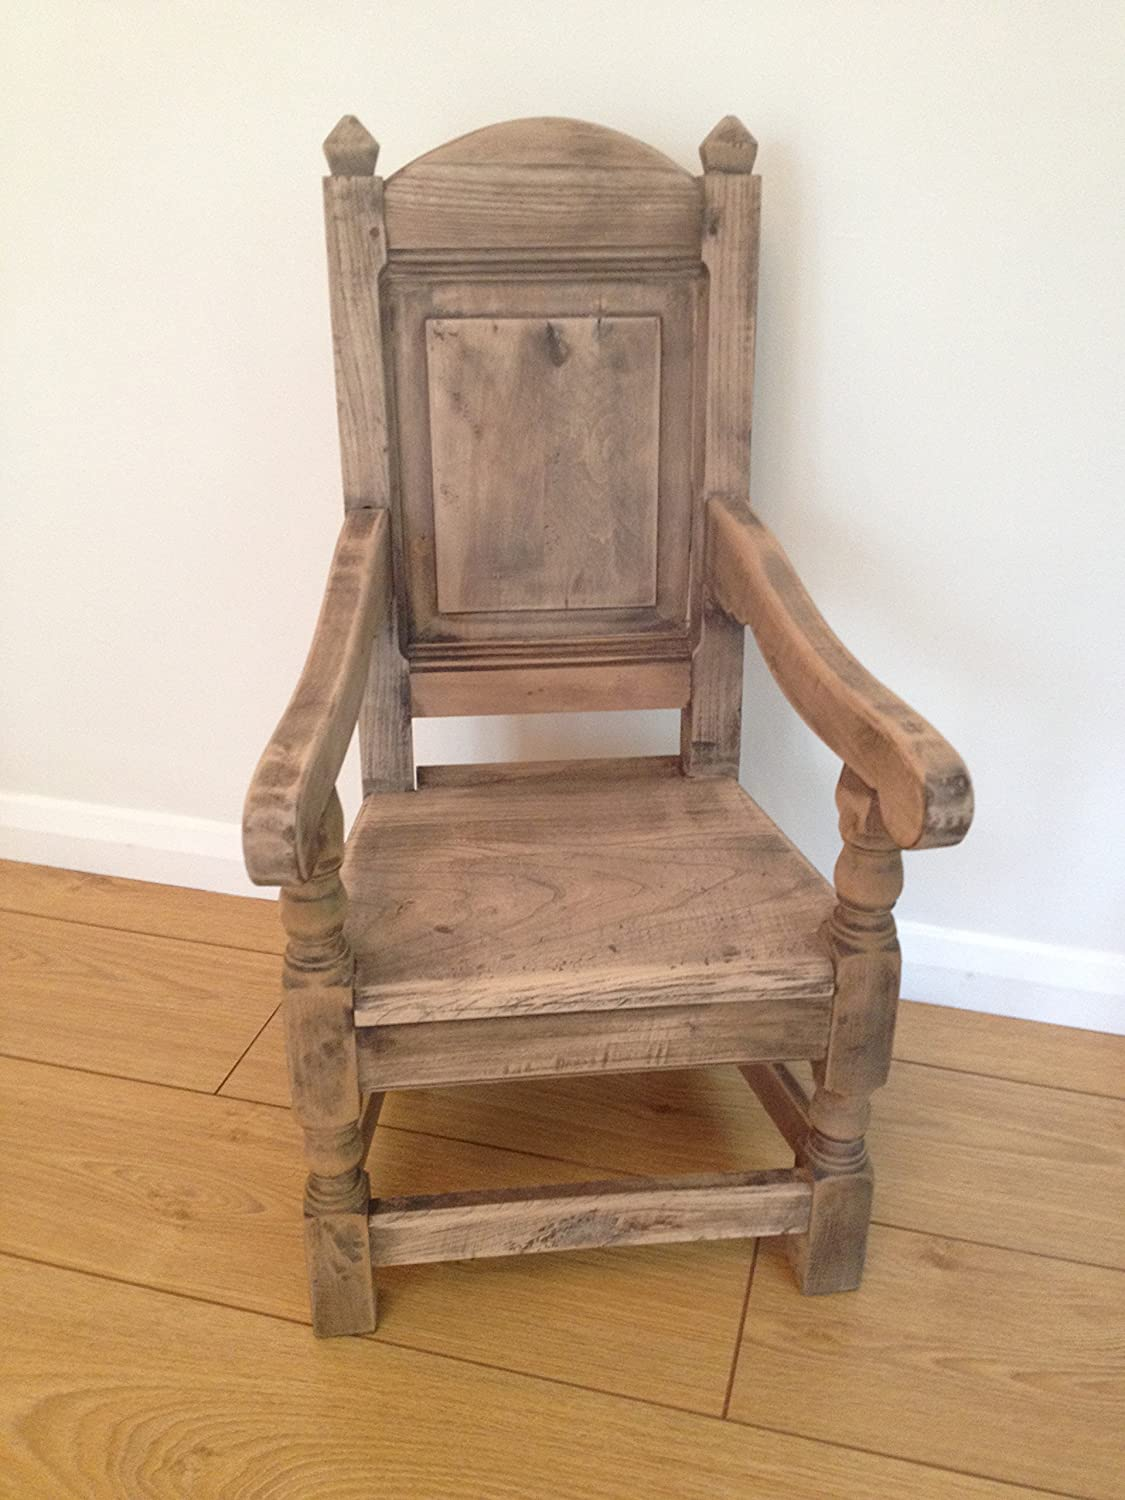 SOLID ELM NATURAL FINISH CHILD'S WAINSCOT CHAIR OWN